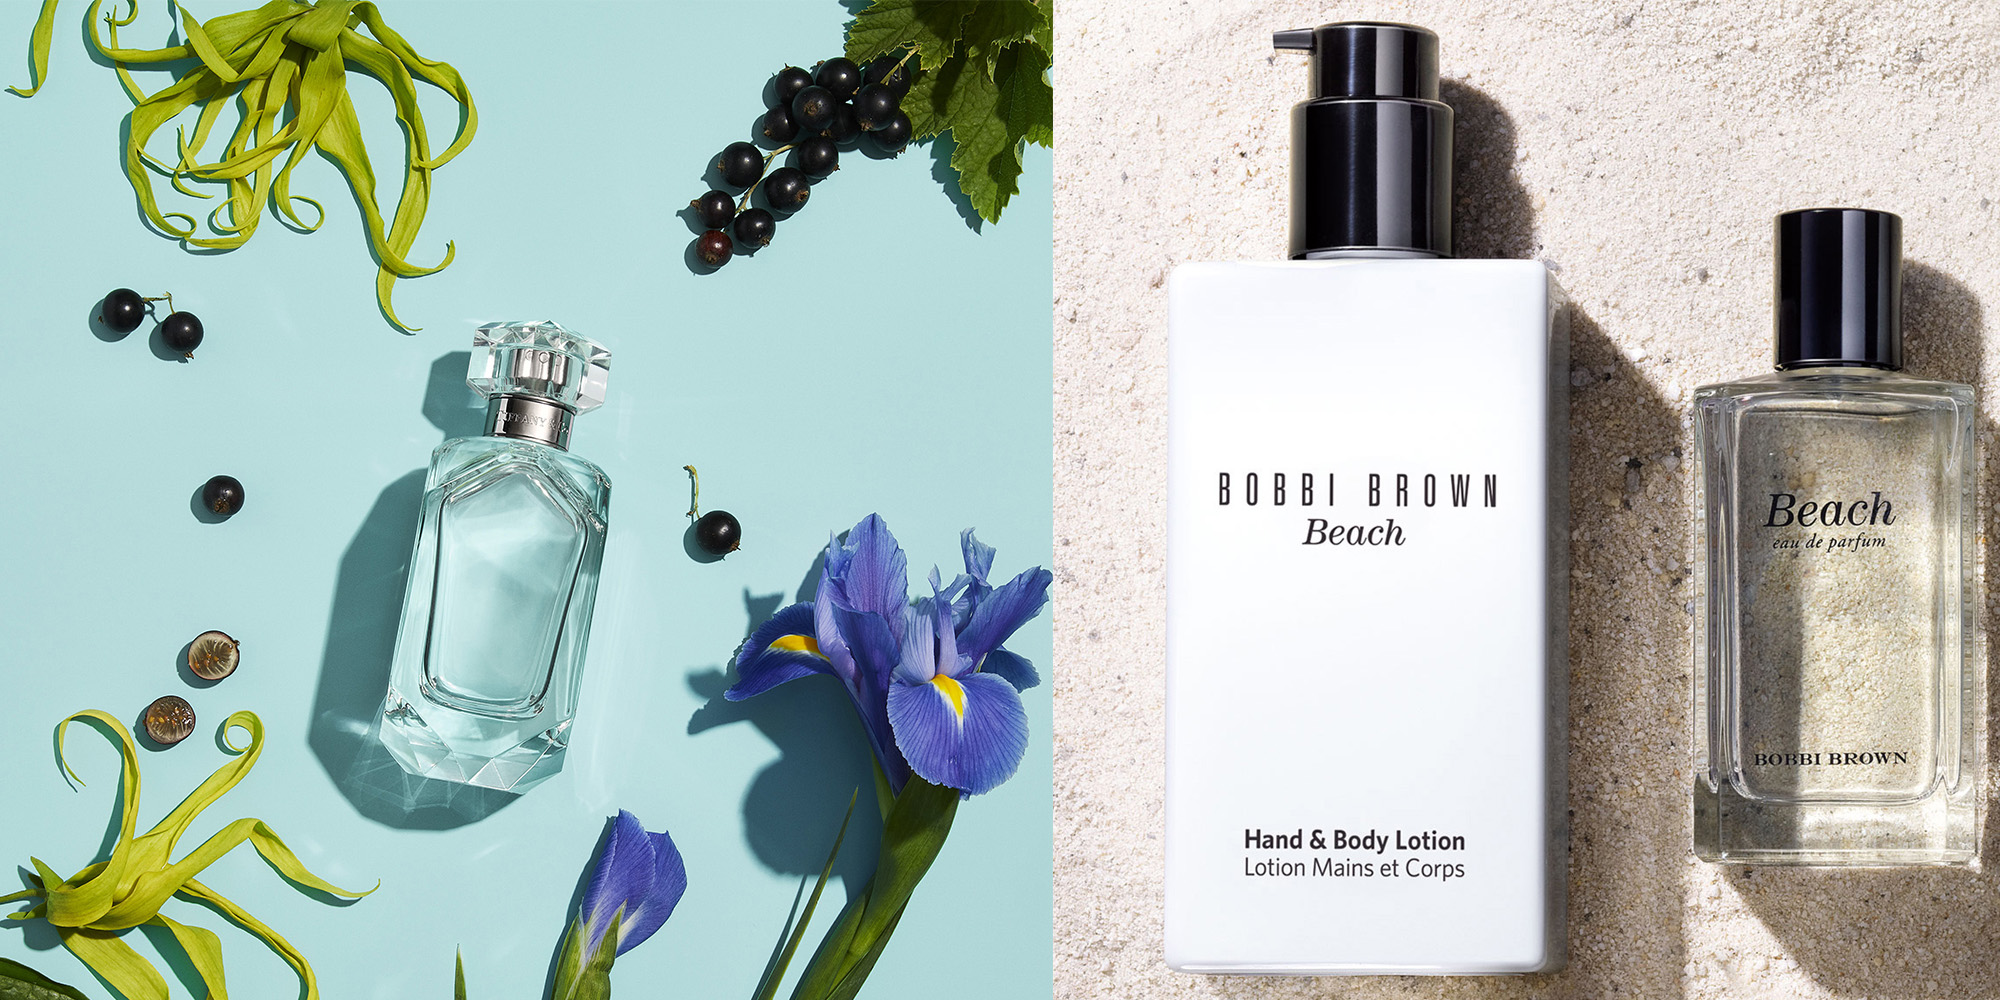 New spring fragrances that are perfect for Mother's Day from $40